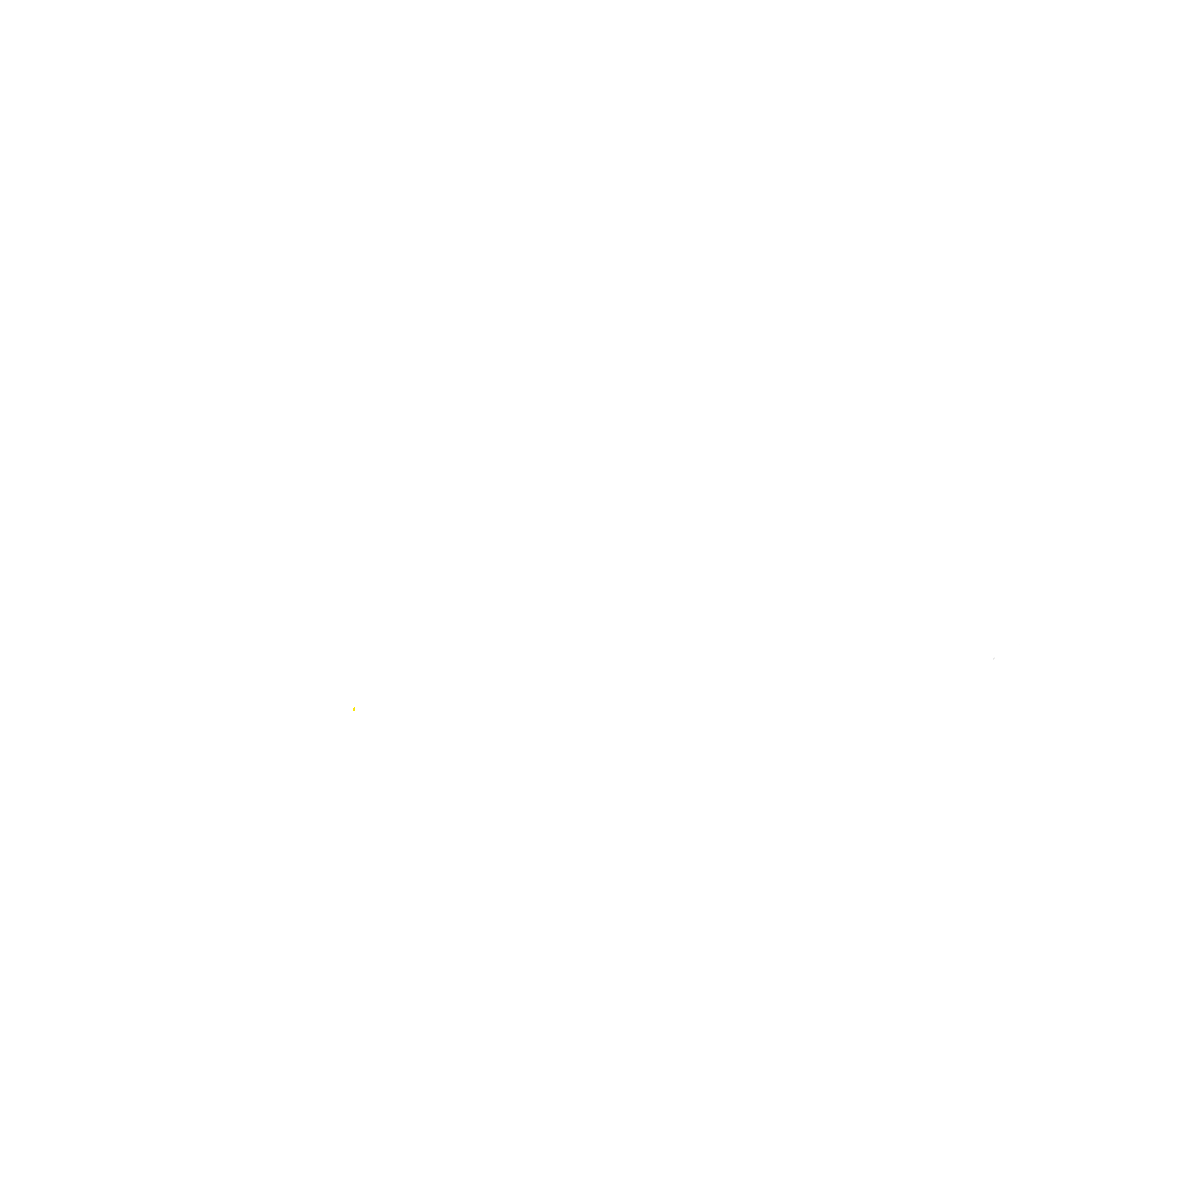 Retro Color